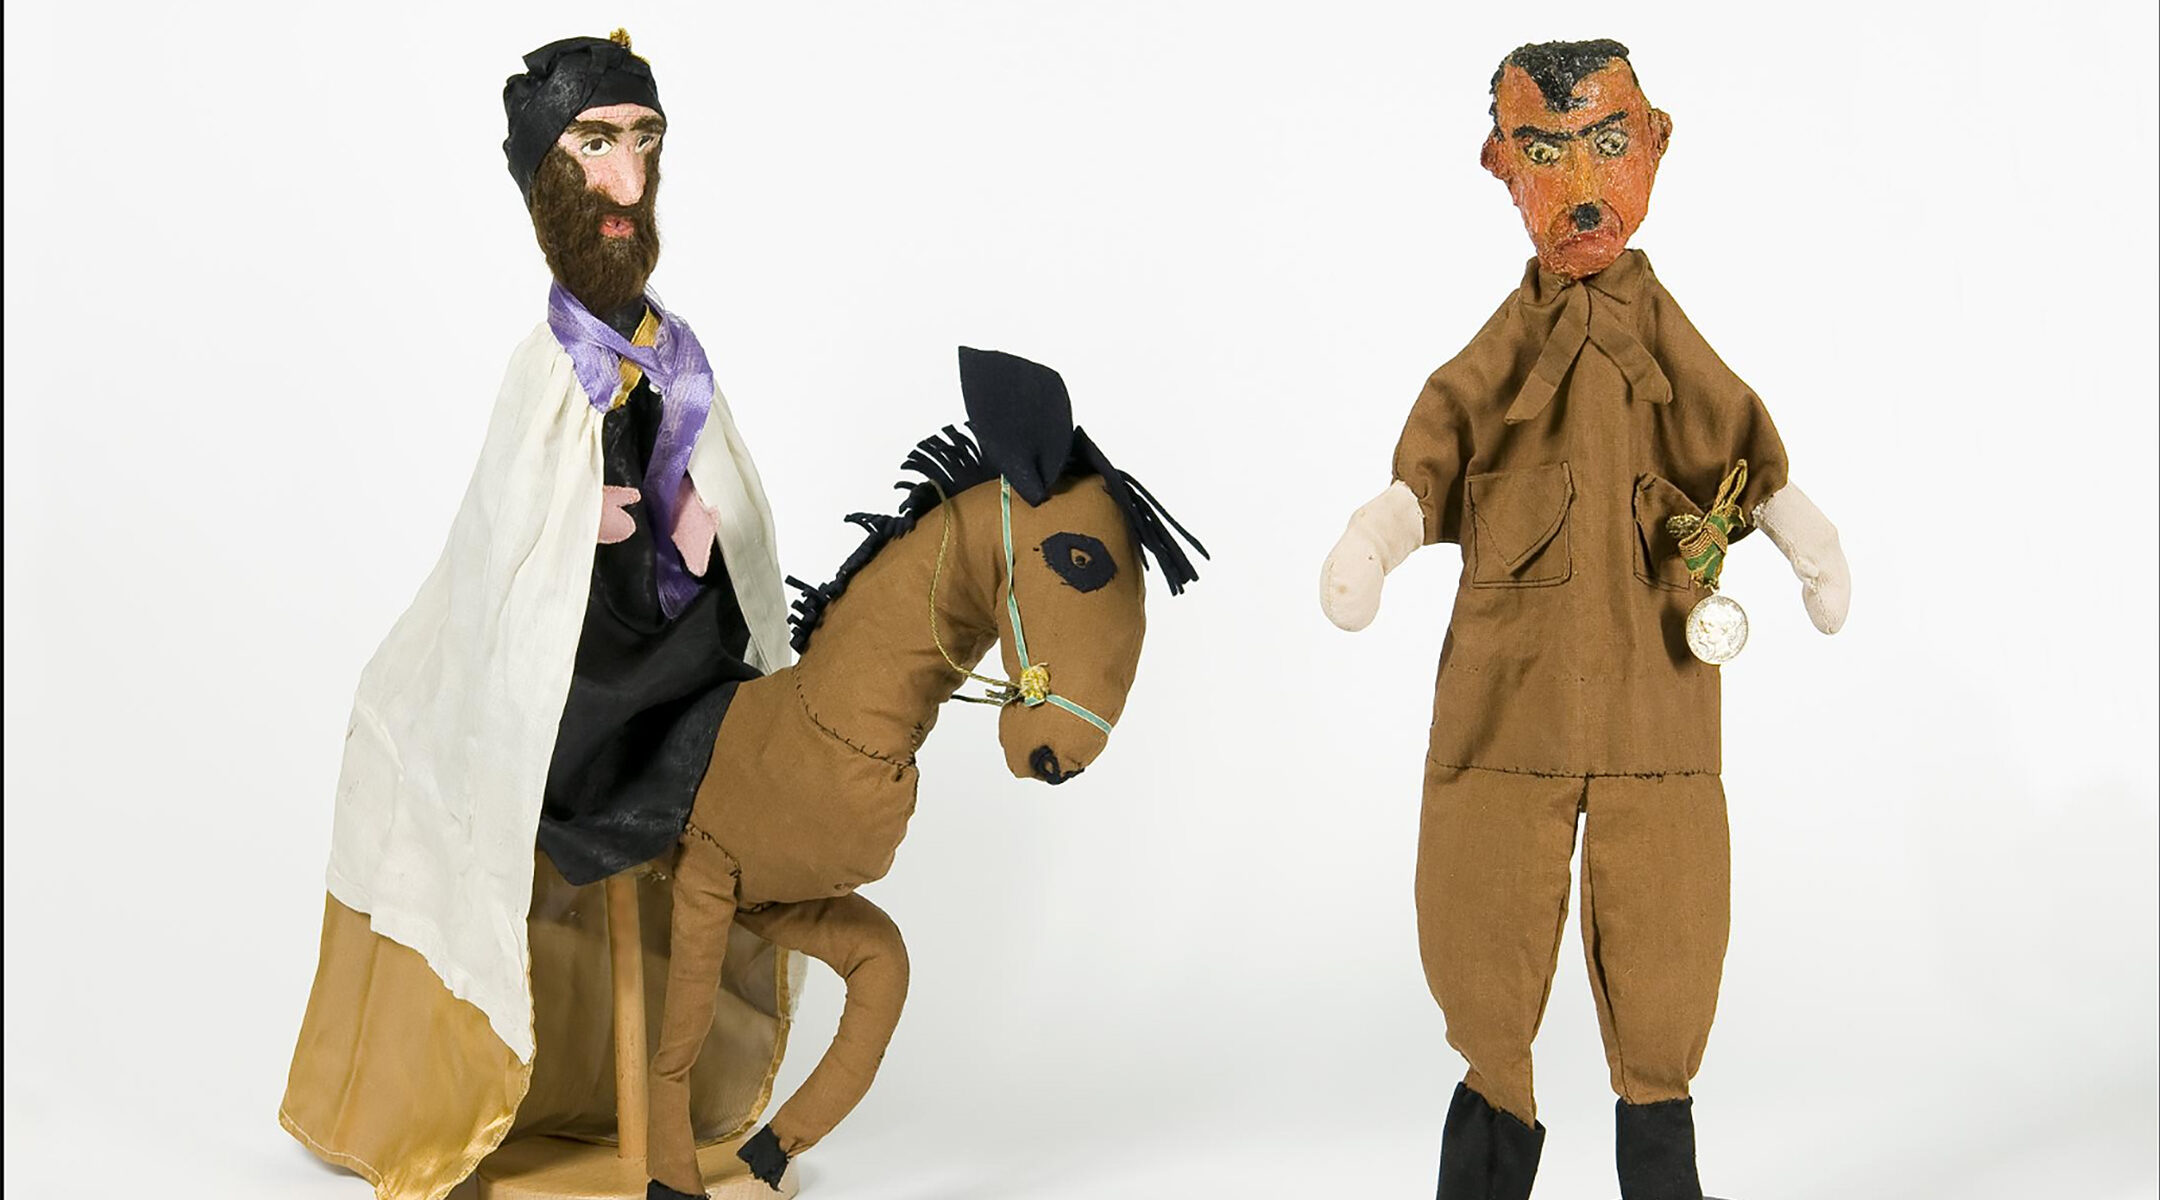 Puppets of Mordechai and Hitler made by Nechama Mayer-Hirsch in 1951. (Courtesy of the Jewish Historical Museum of Amsterdam)